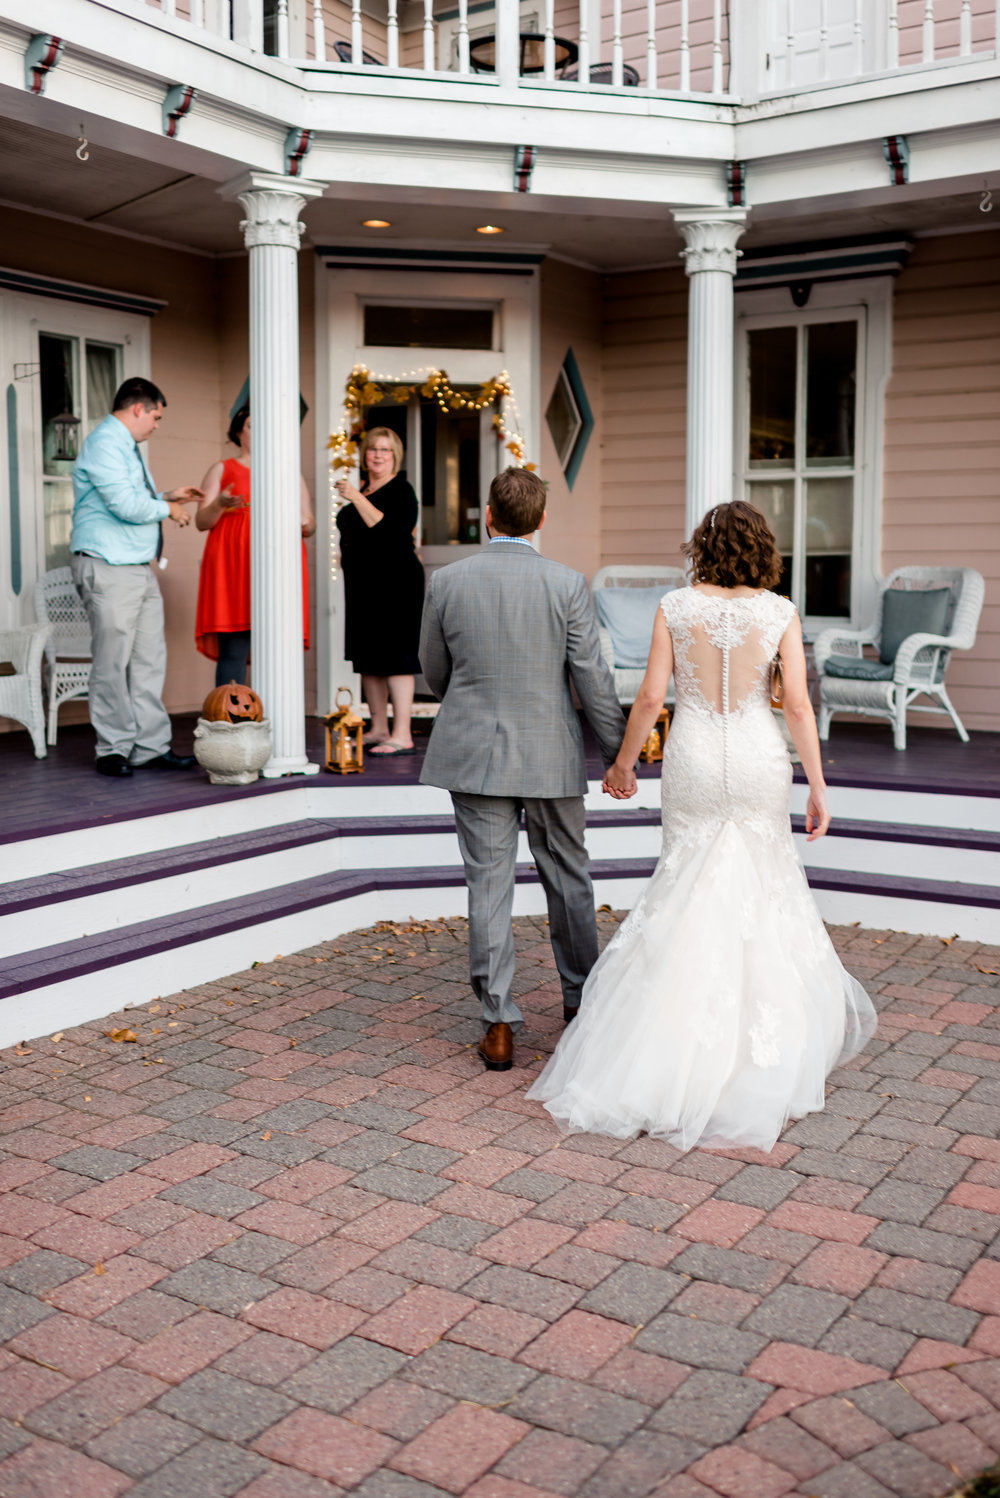 Bride and Groom entering the Bird House Inn in Excelsior MN - Minnetonka MN Wedding Photographer